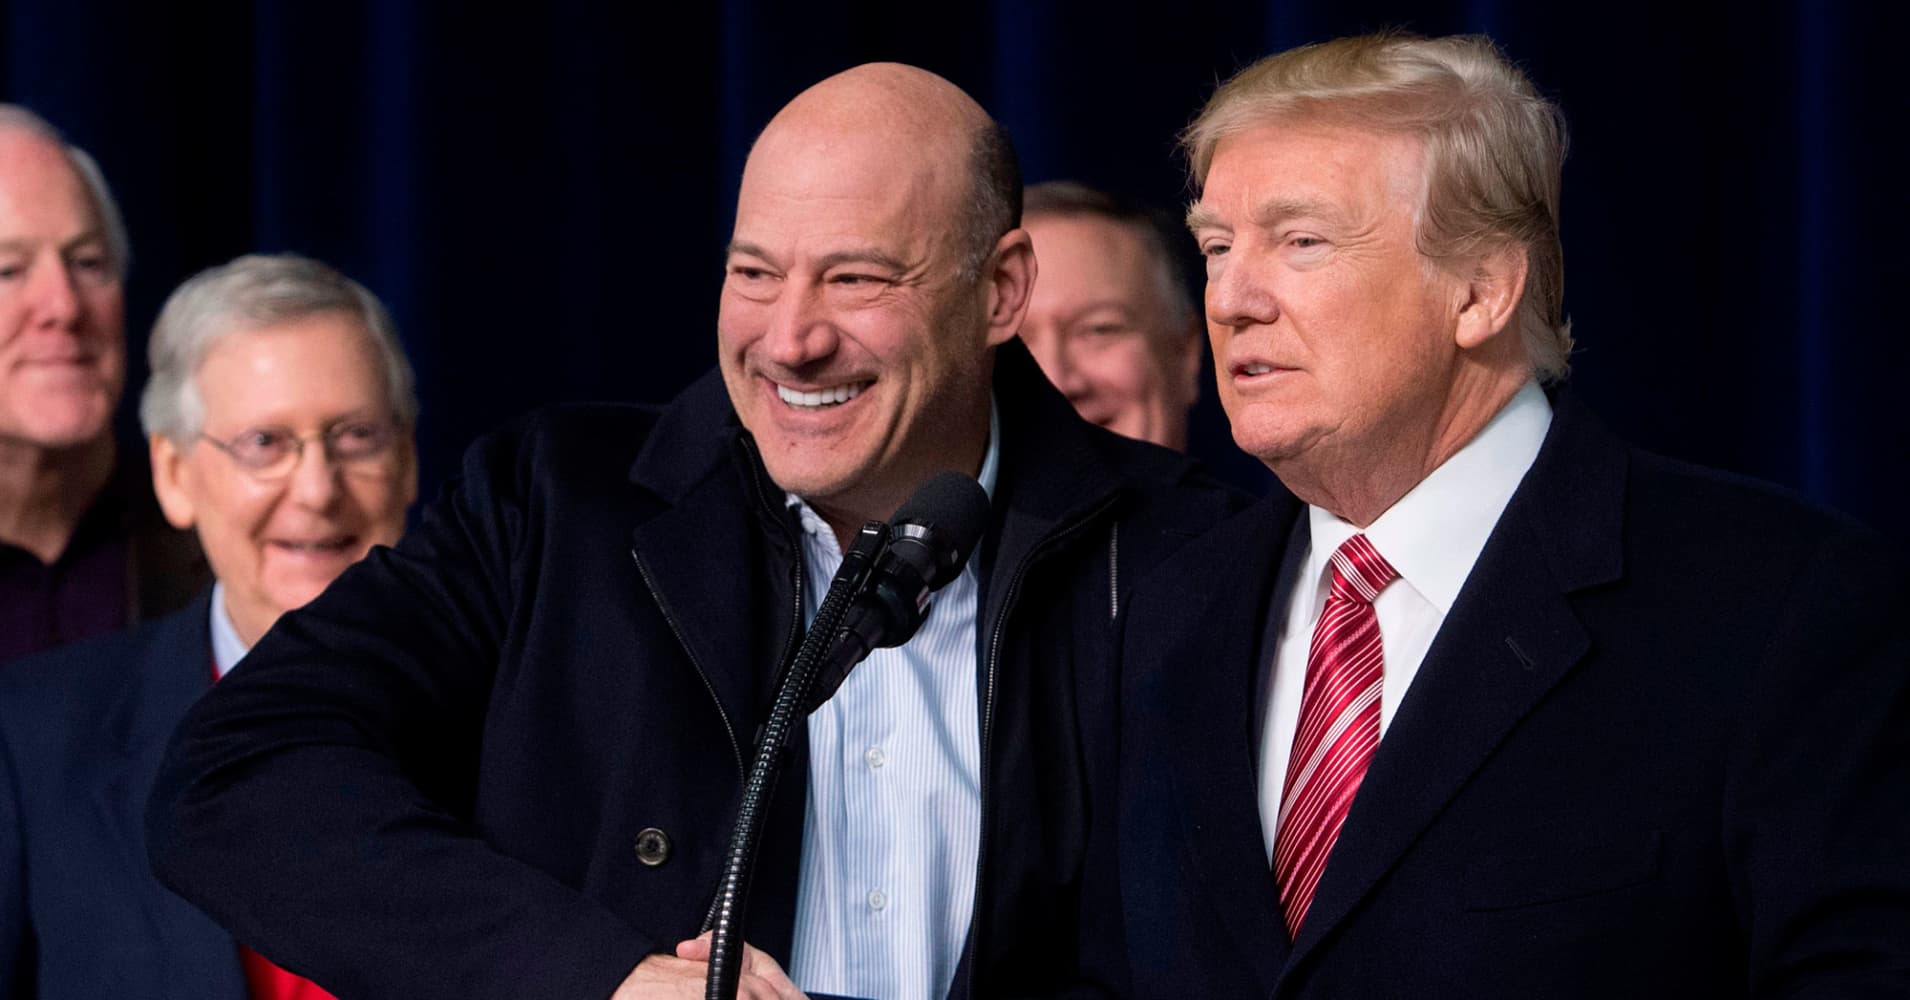 One Goldman takeover that failed: The Trump White House